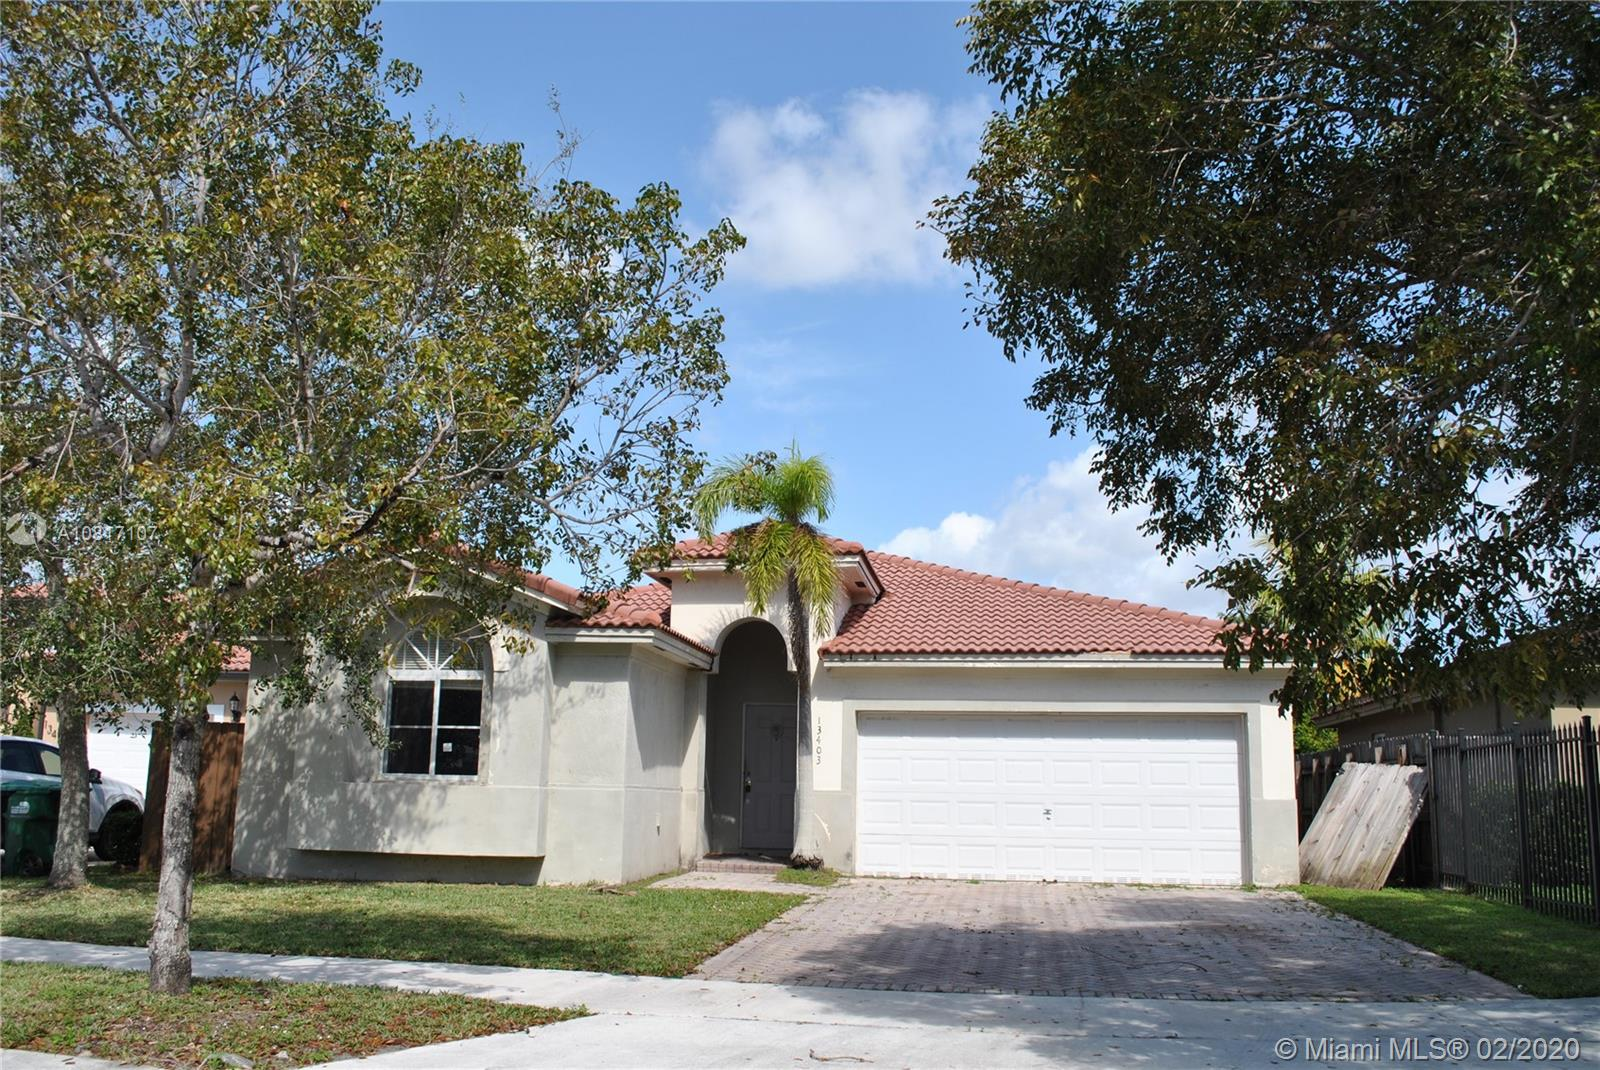 13403 SW 284th St, Homestead, FL 33033 - Homestead, FL real estate listing